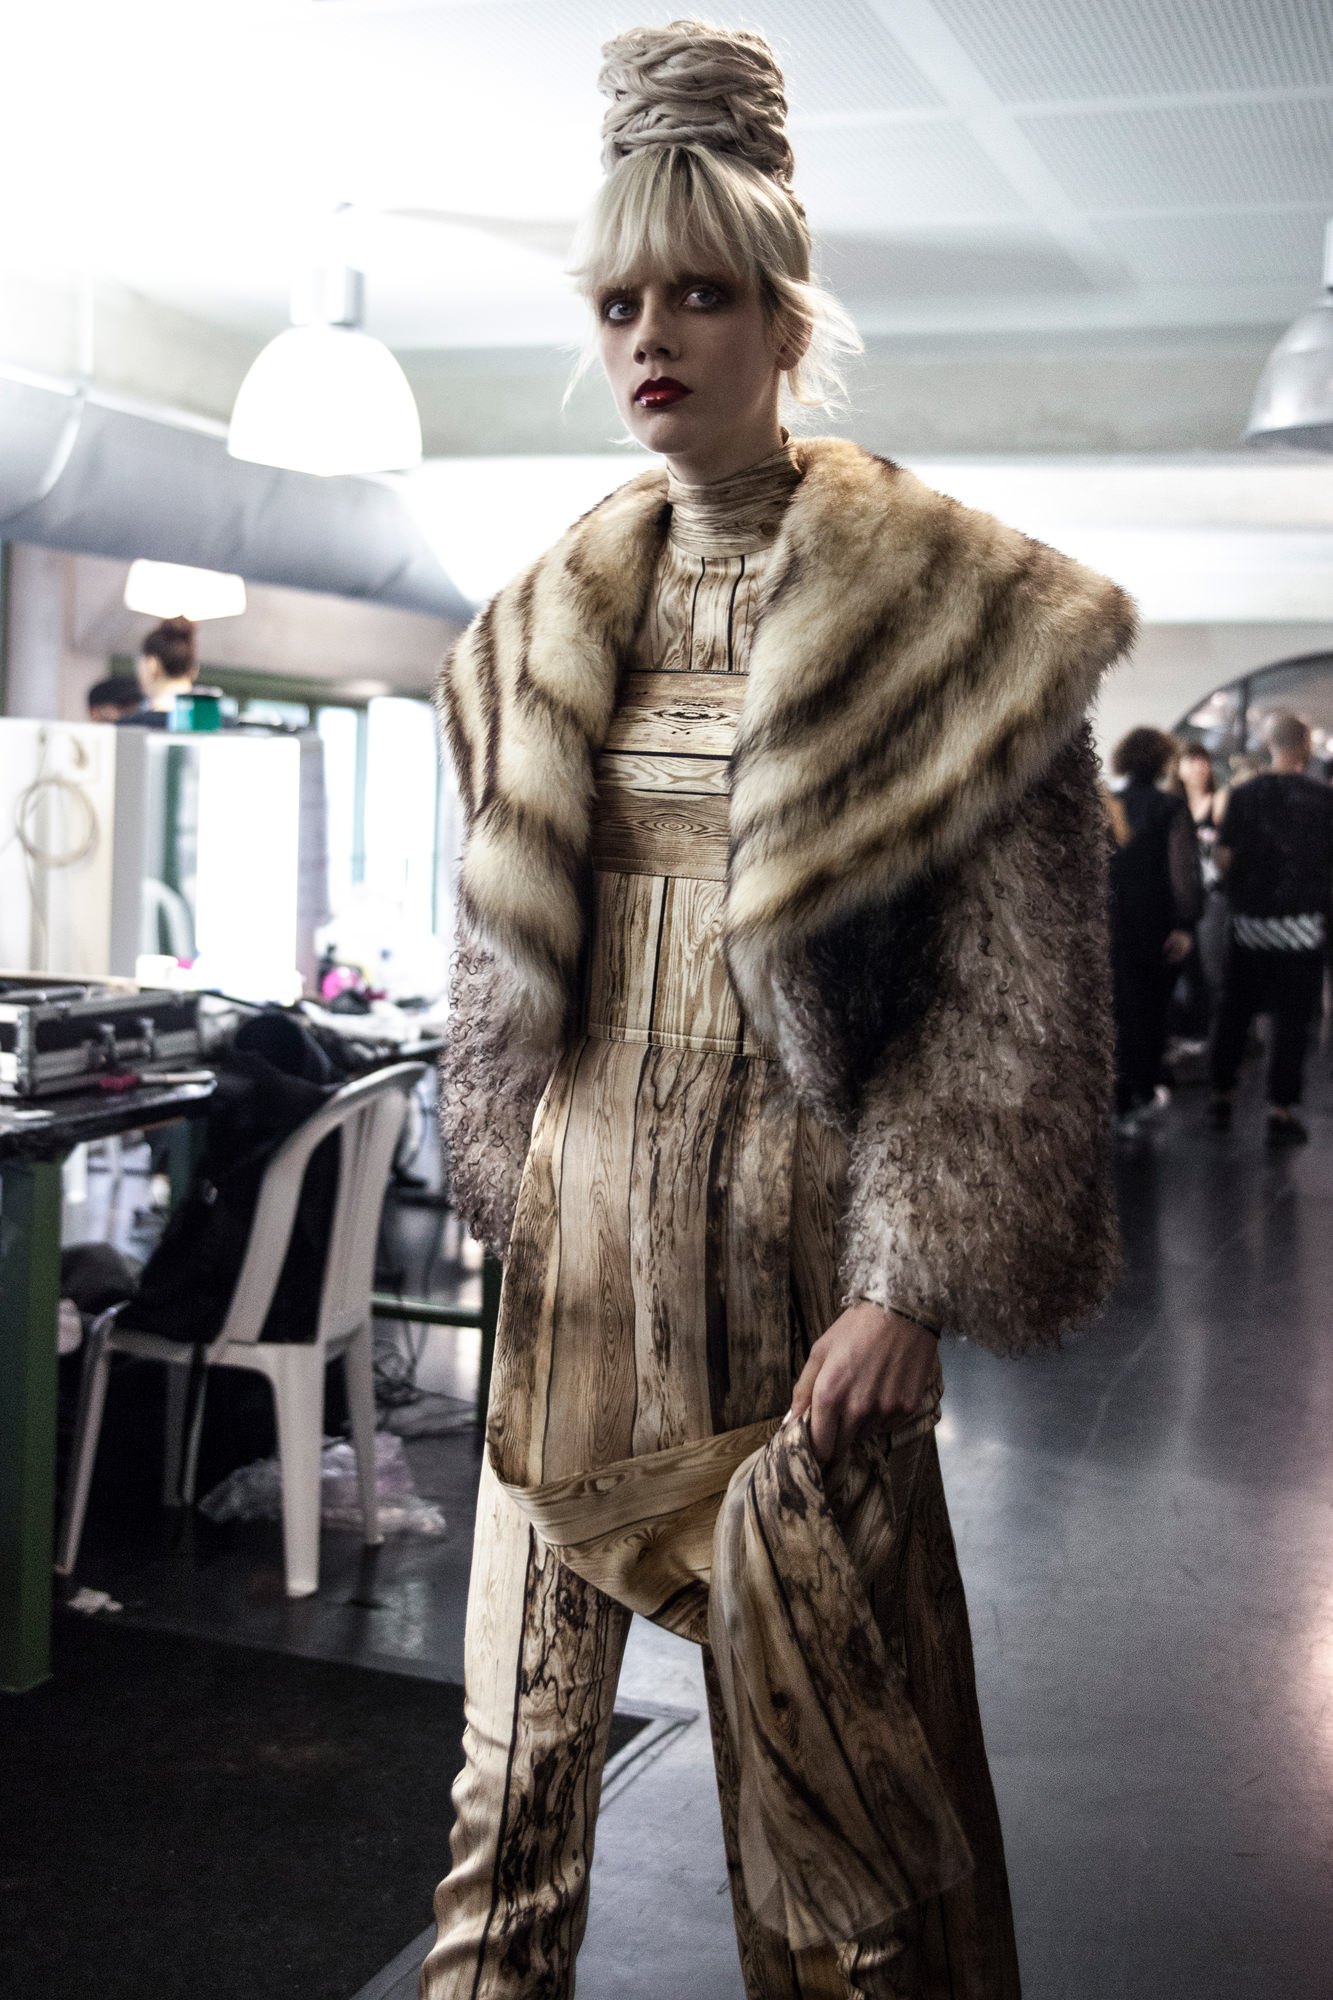 Backstage: Jean Paul Gaultier haute couture fall-winter 2016-2017 runway show